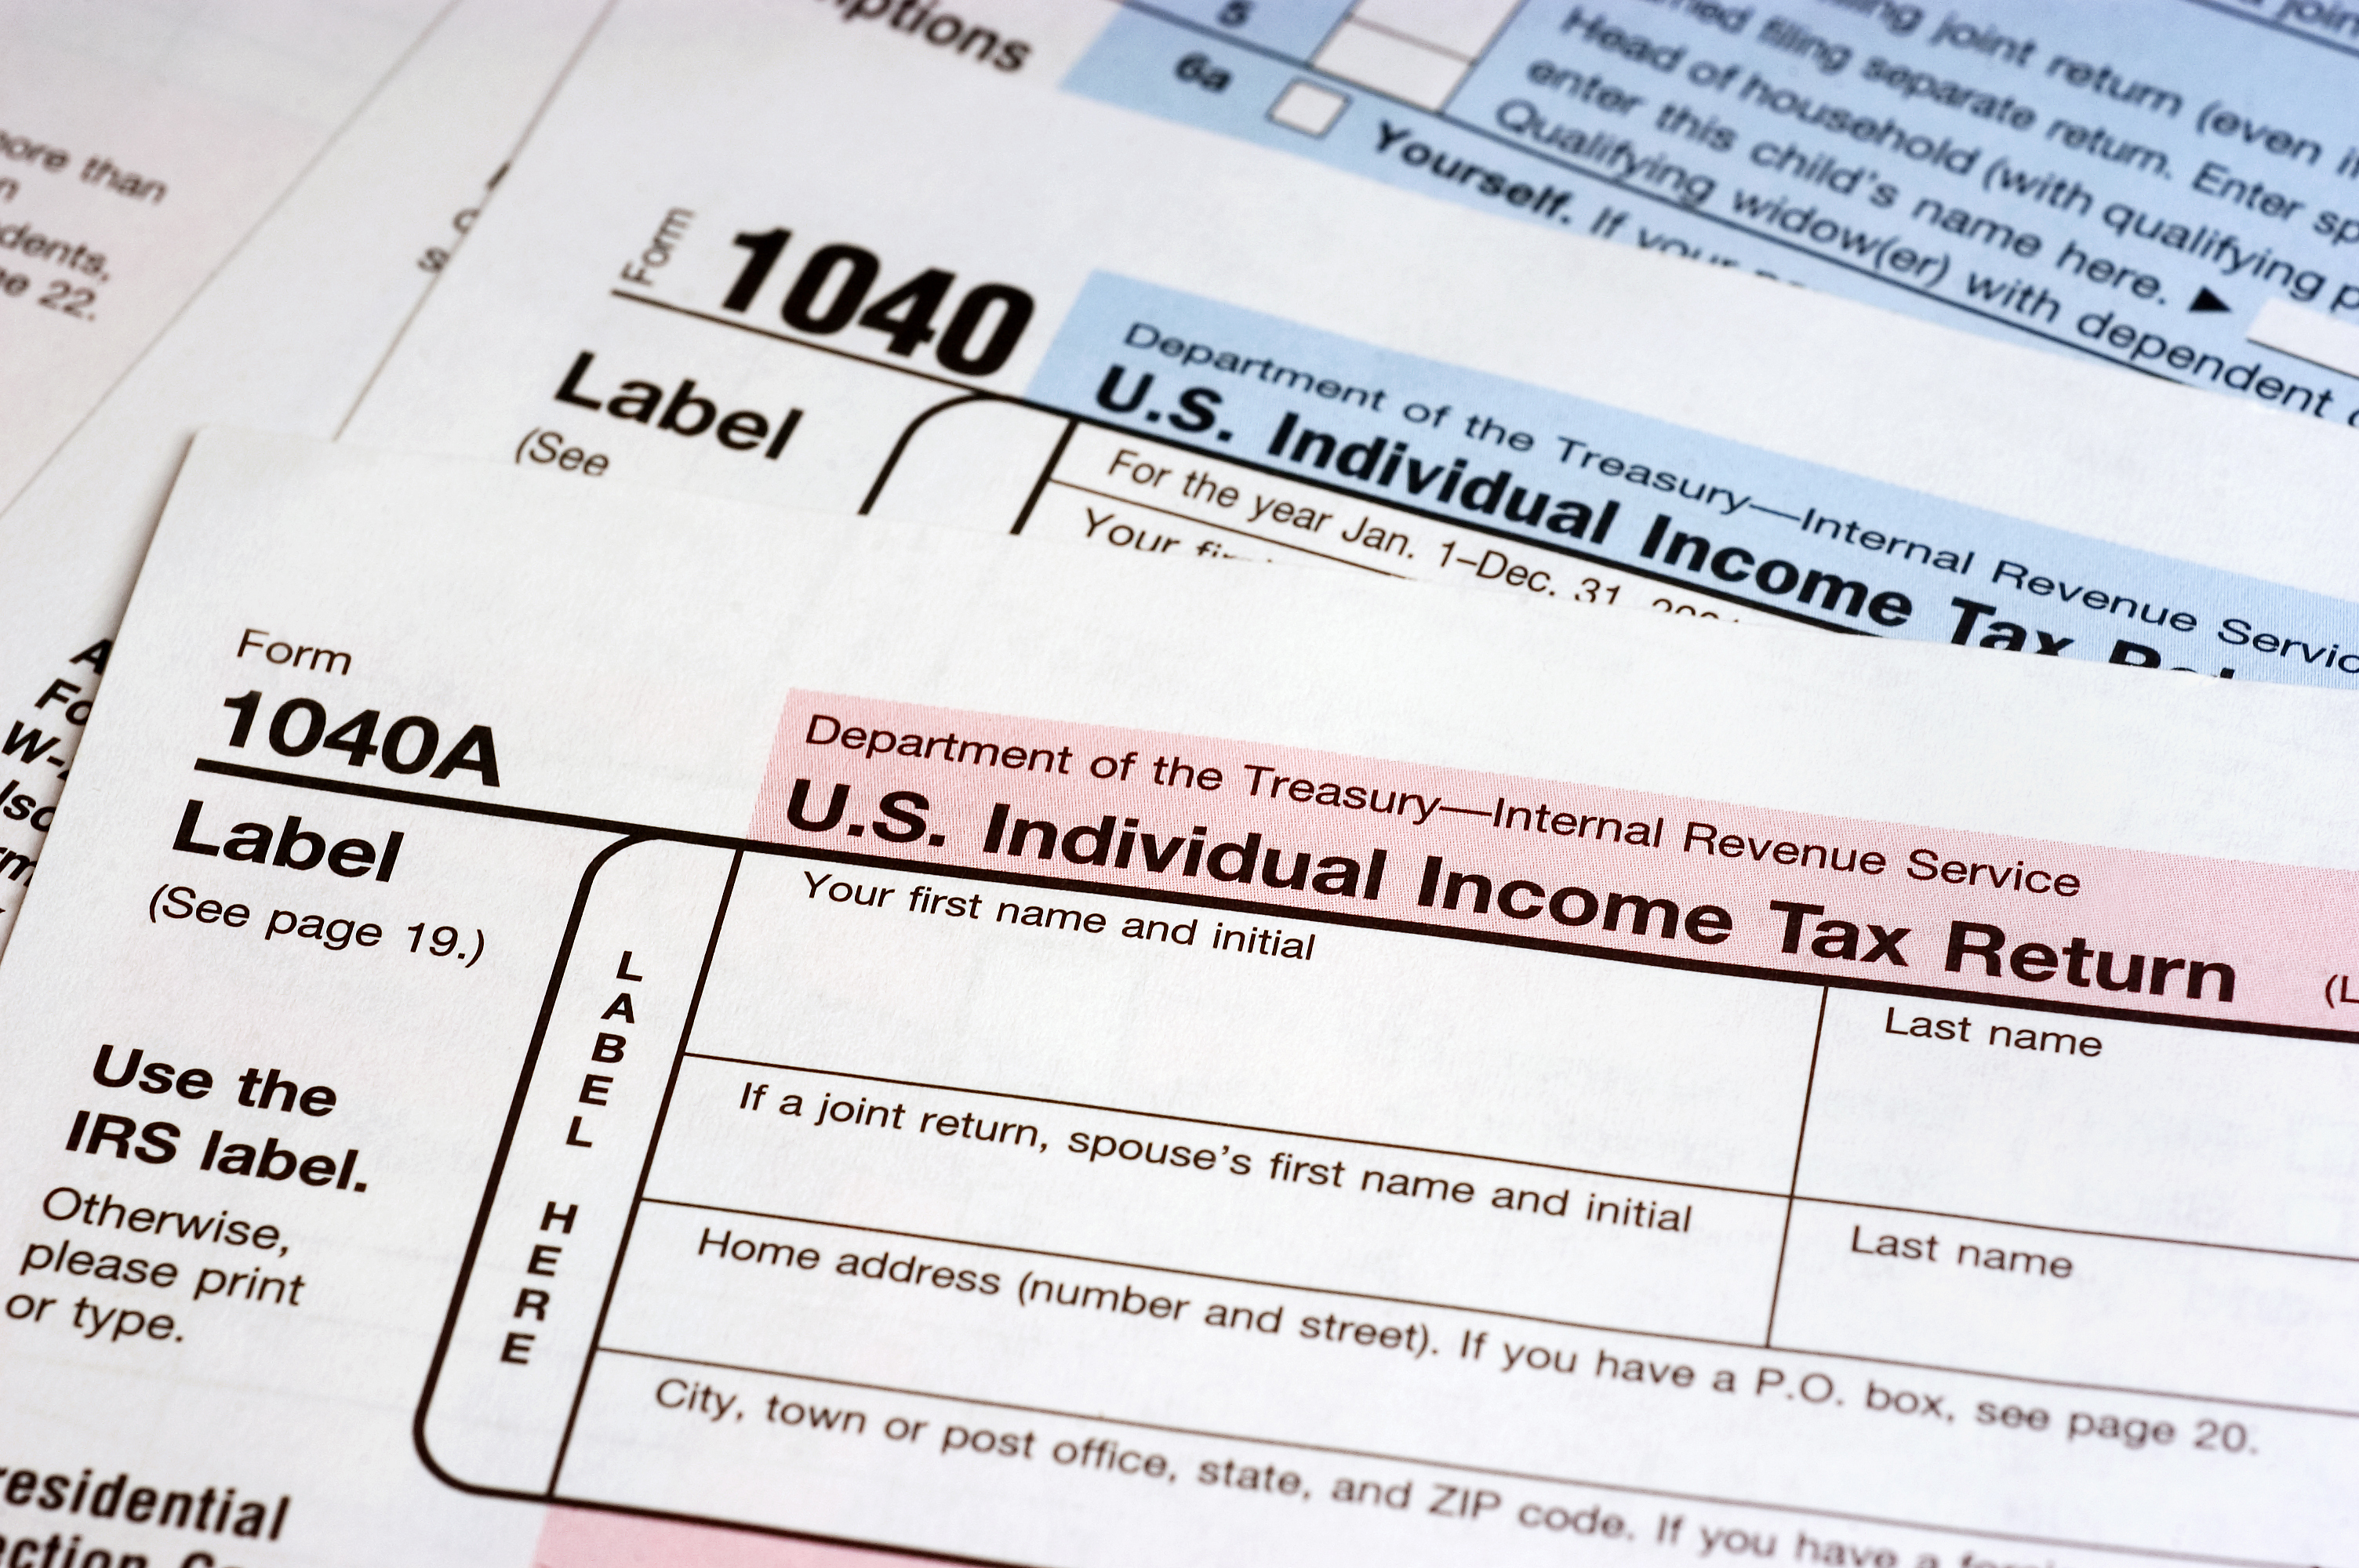 Can I Go Ahead & File My Taxes Without All the 1099s? | Pocket Sense